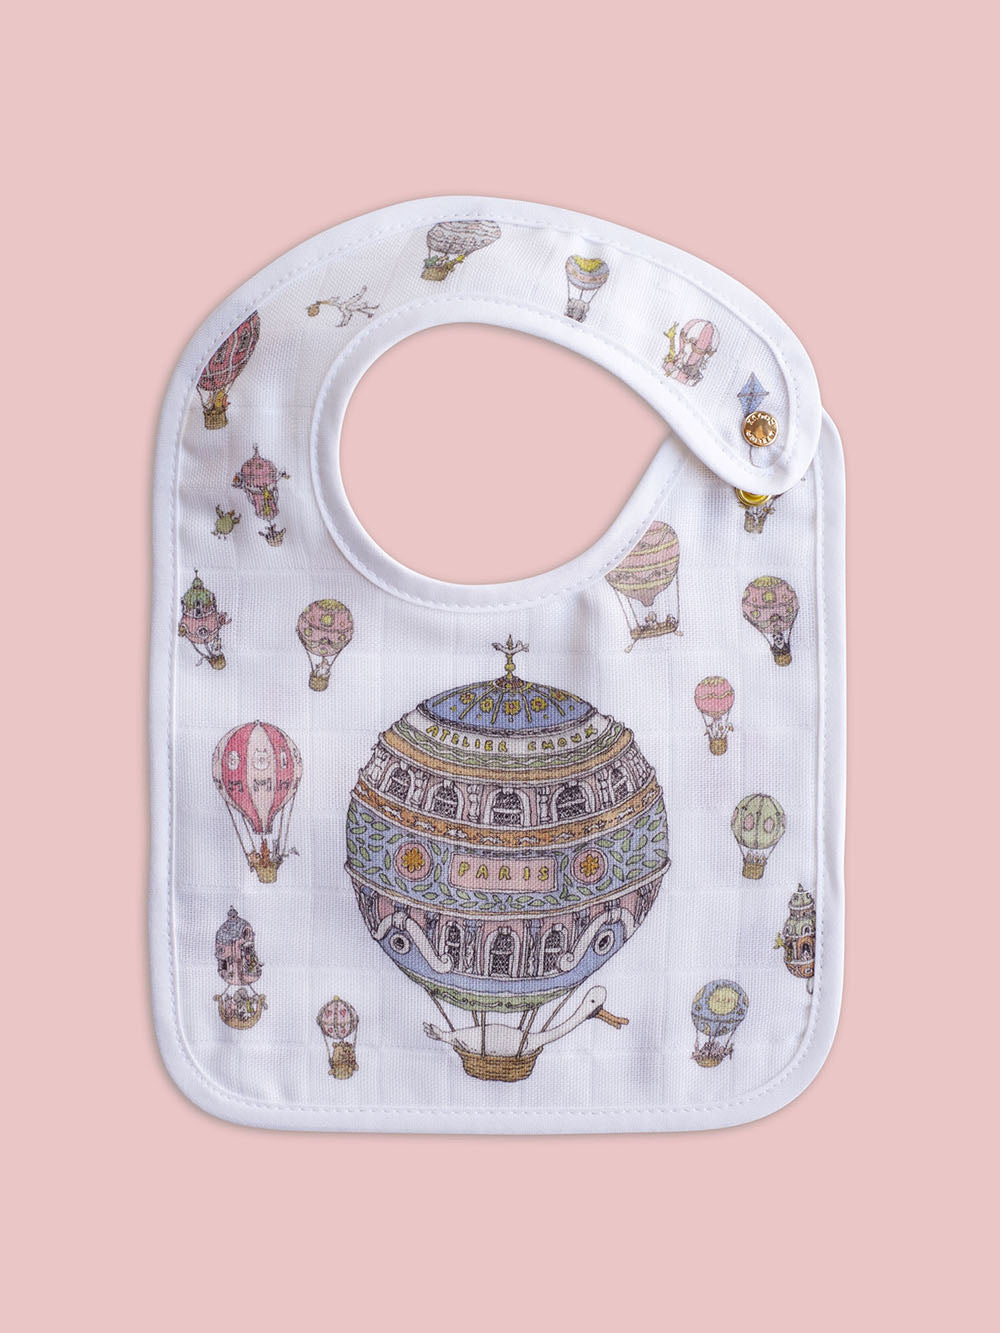 French Organic Cotton Bib - Hot Air Balloons by Atelier Choux (Small)